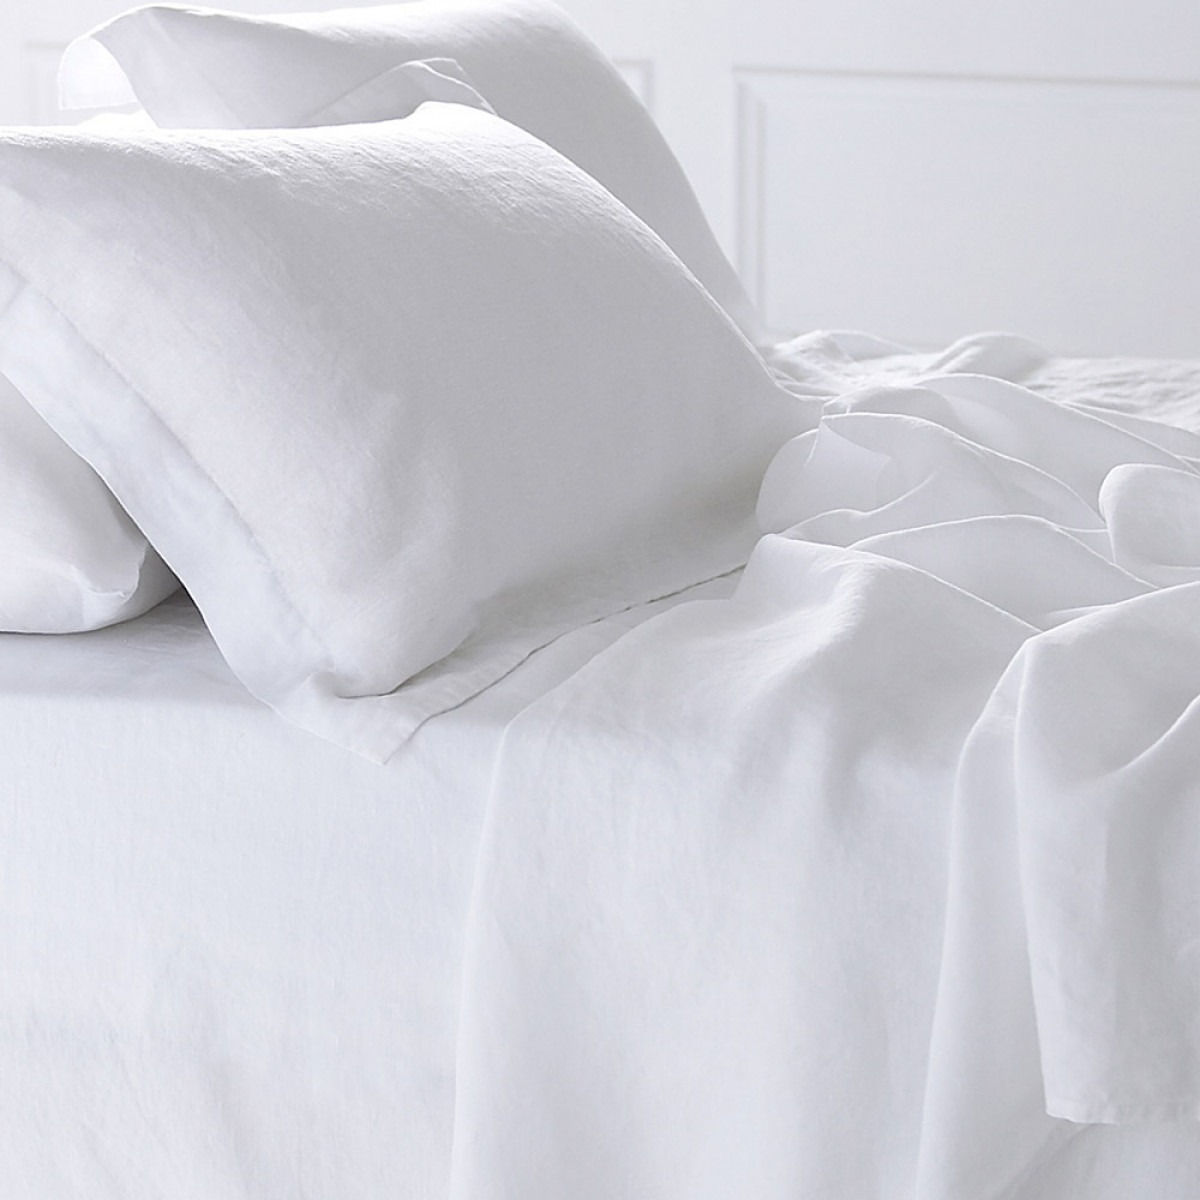 Pure white washed linen